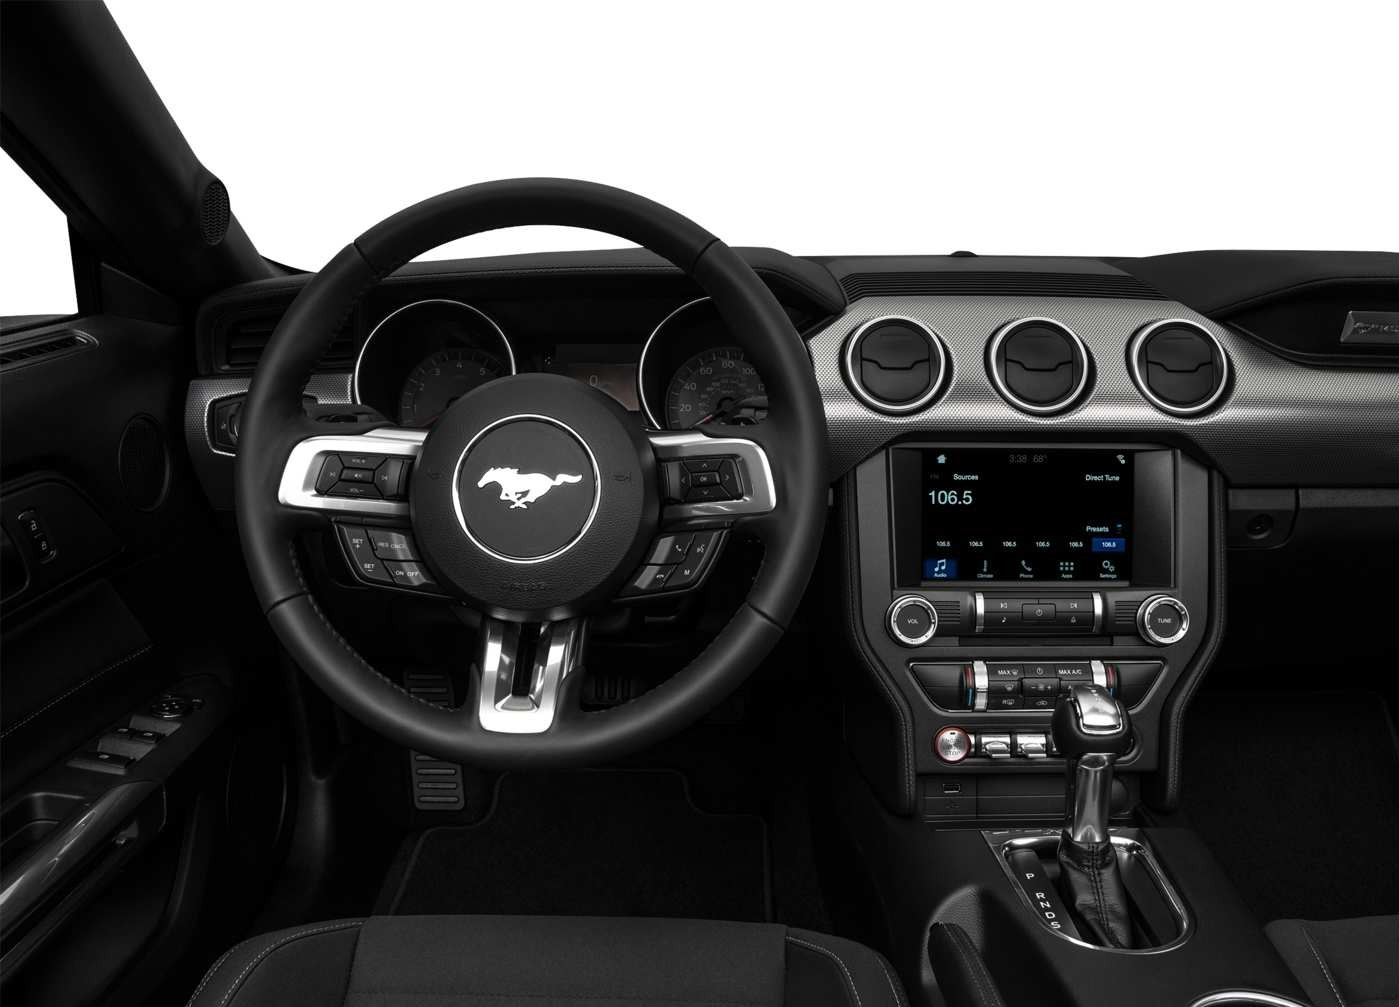 2019 Ford Mustang Ecoboost Steering Wheel